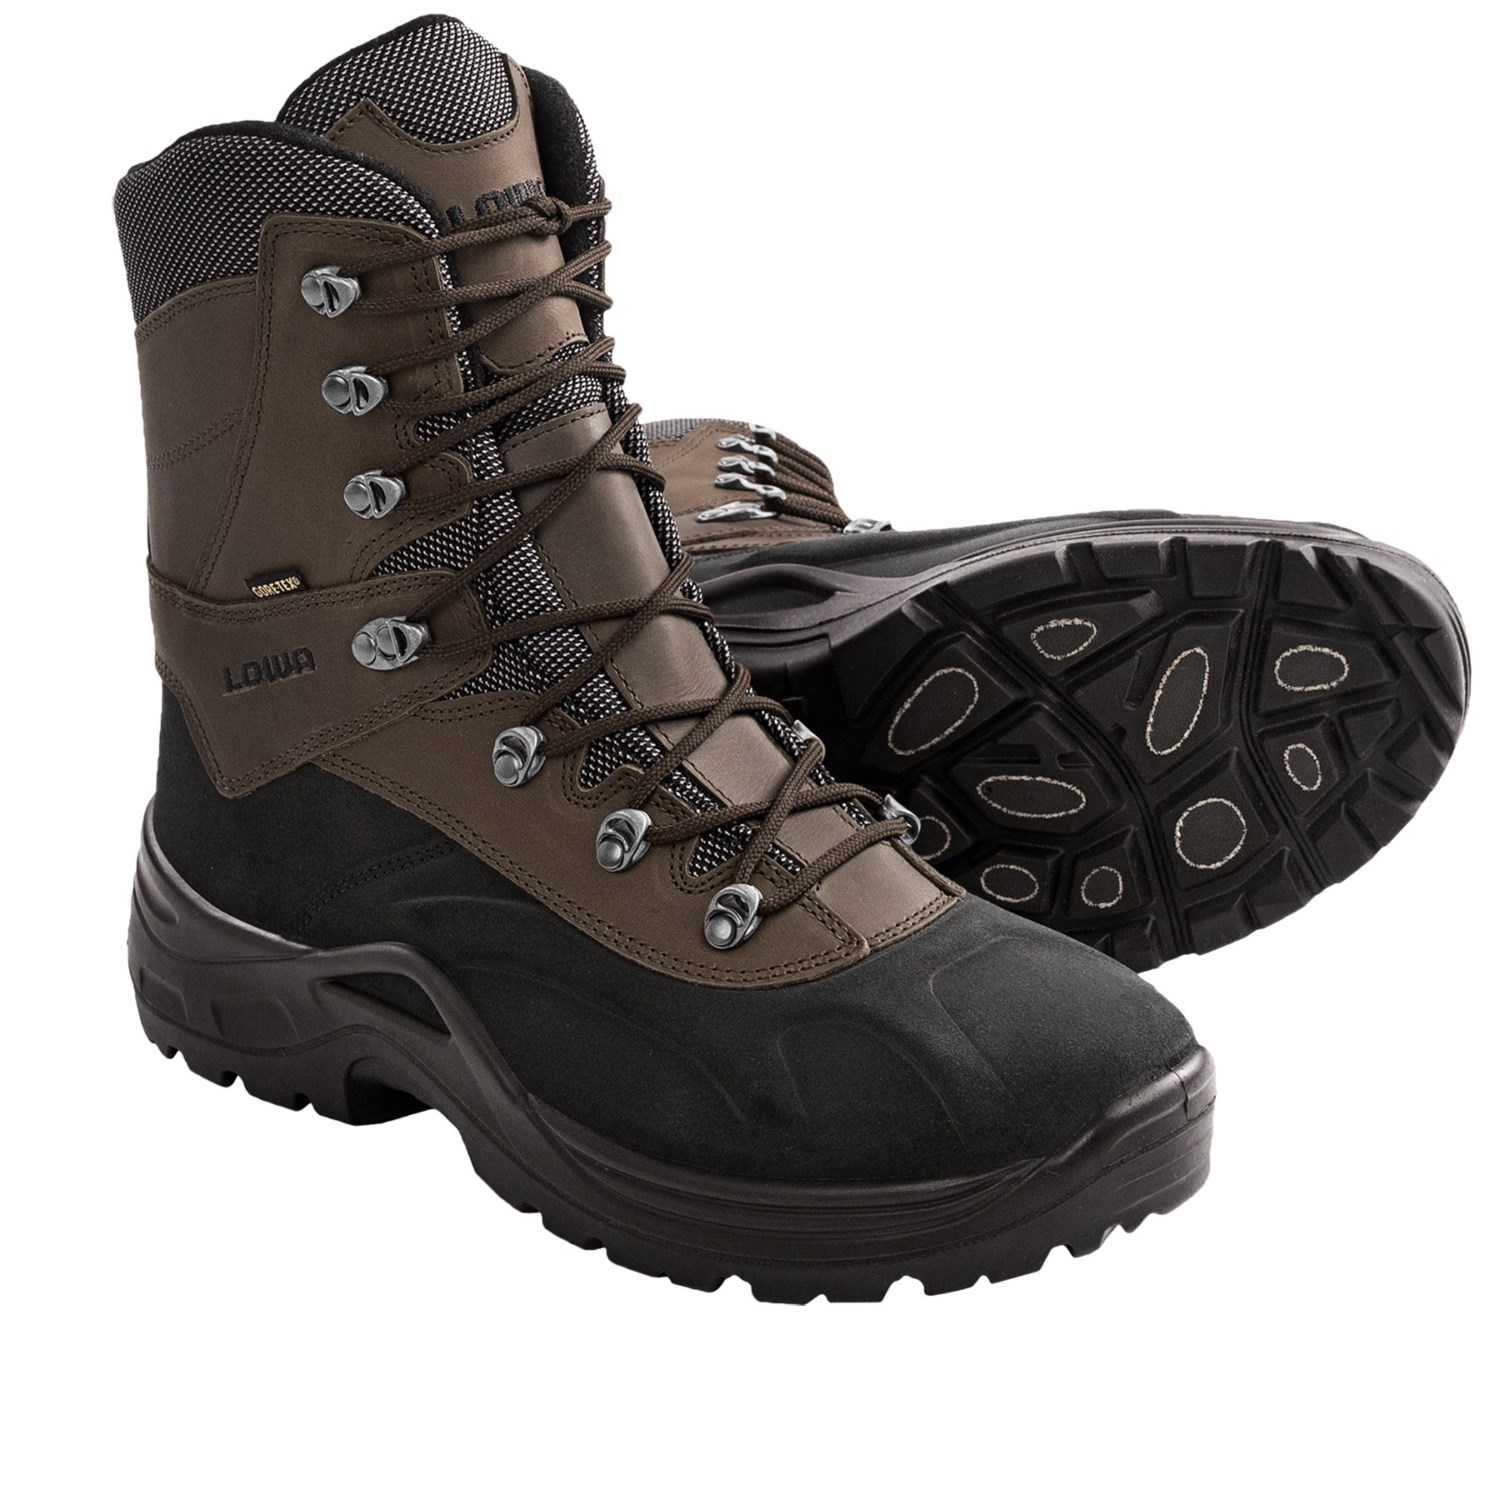 Lowa Couloir Gore-Tex® Winter Boots (For Men) 7117Y - Save 58%